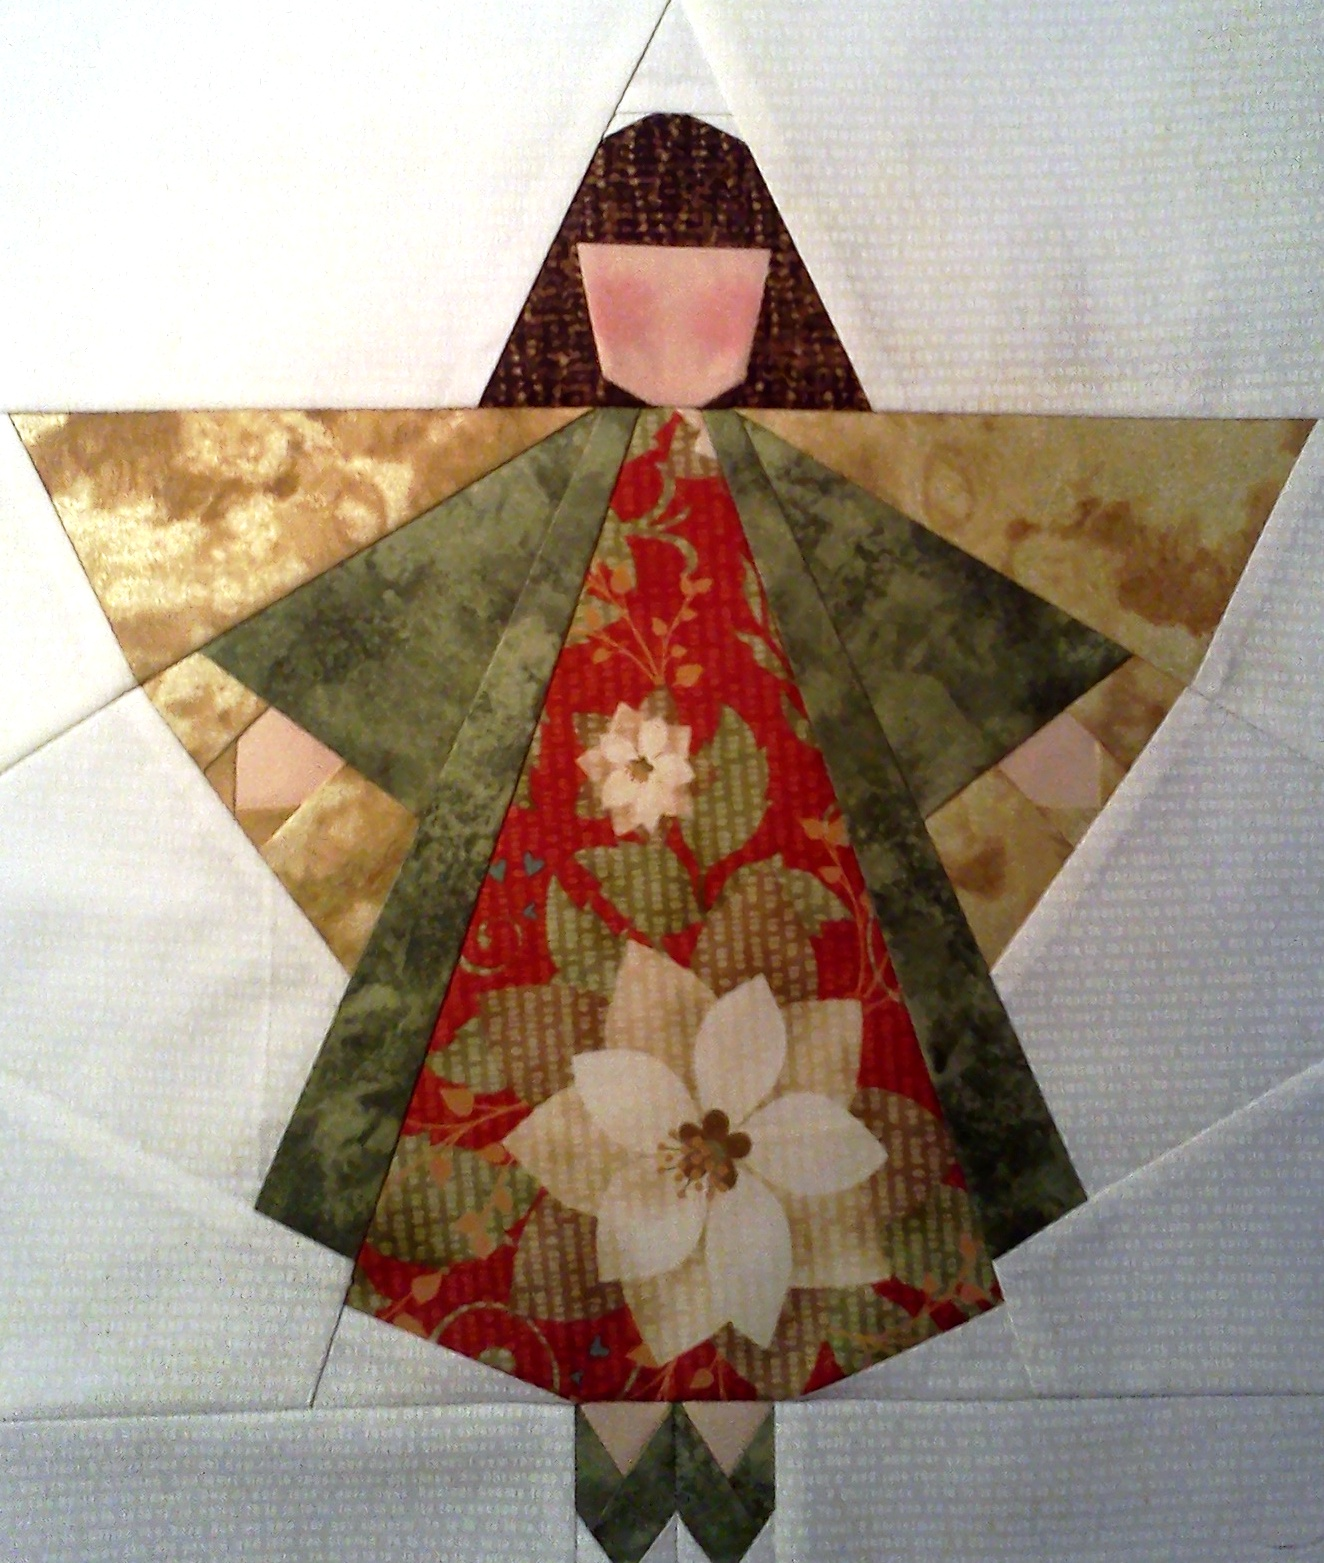 Paper Pieced Christmas Tree Pattern: Larkspur Lane Designs: Just Finished Another Christmas Angel